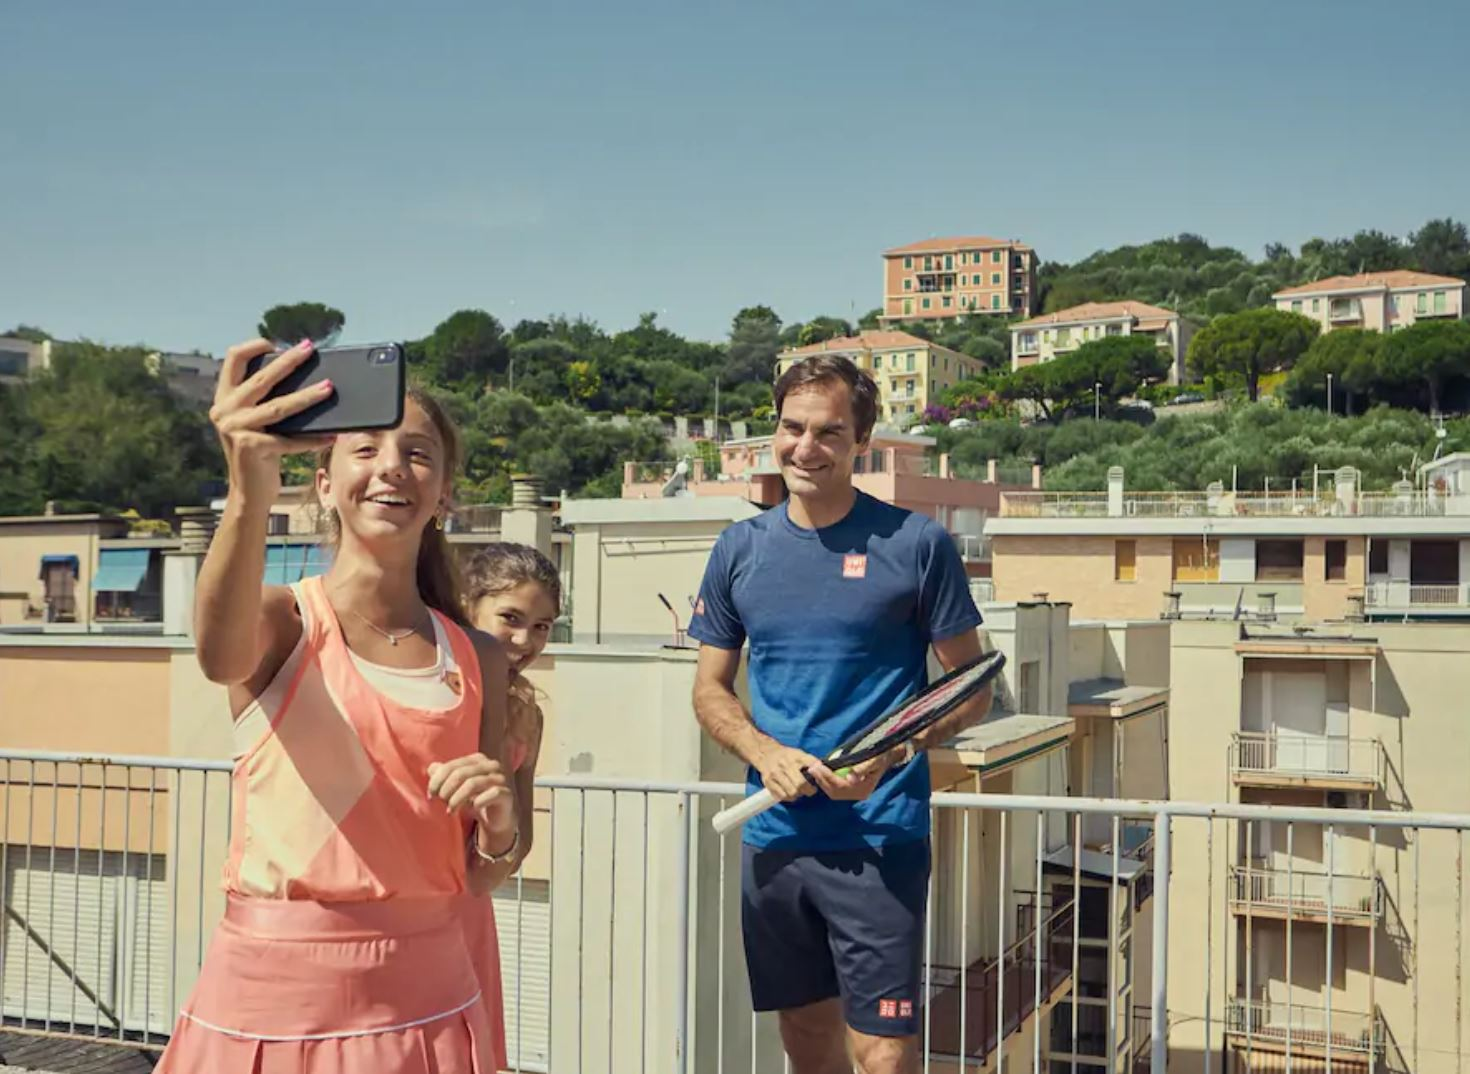 Watch: Federer Joins Vittoria and Carola for Rooftop Rally and Pasta in Liguria